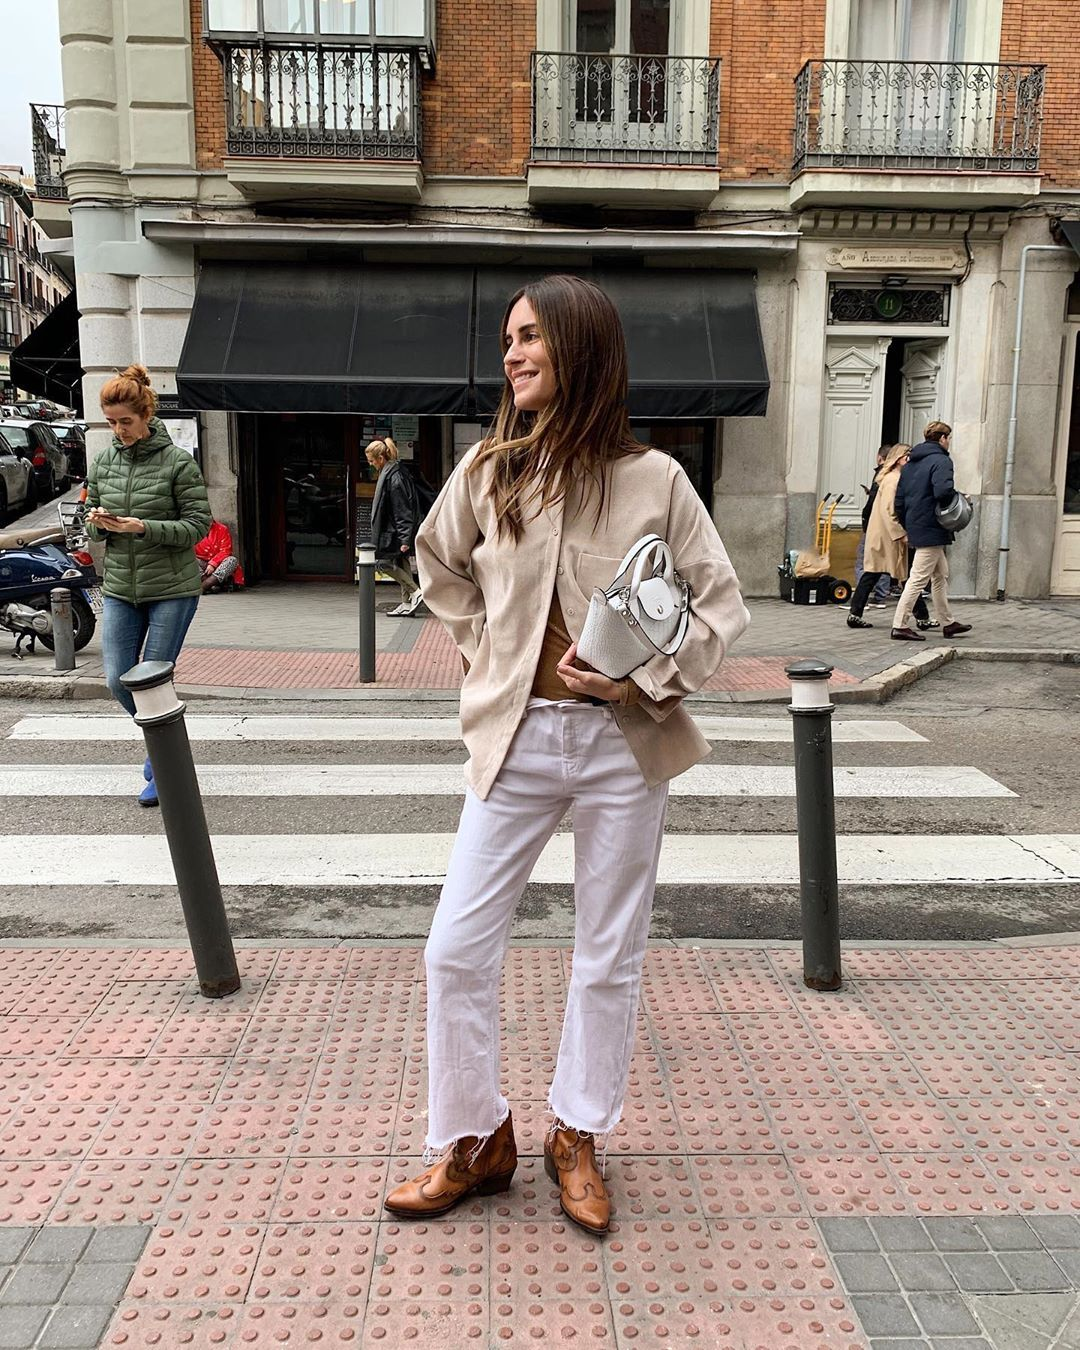 gala-gonzalez-white-jeans-outfit-winter-instagram